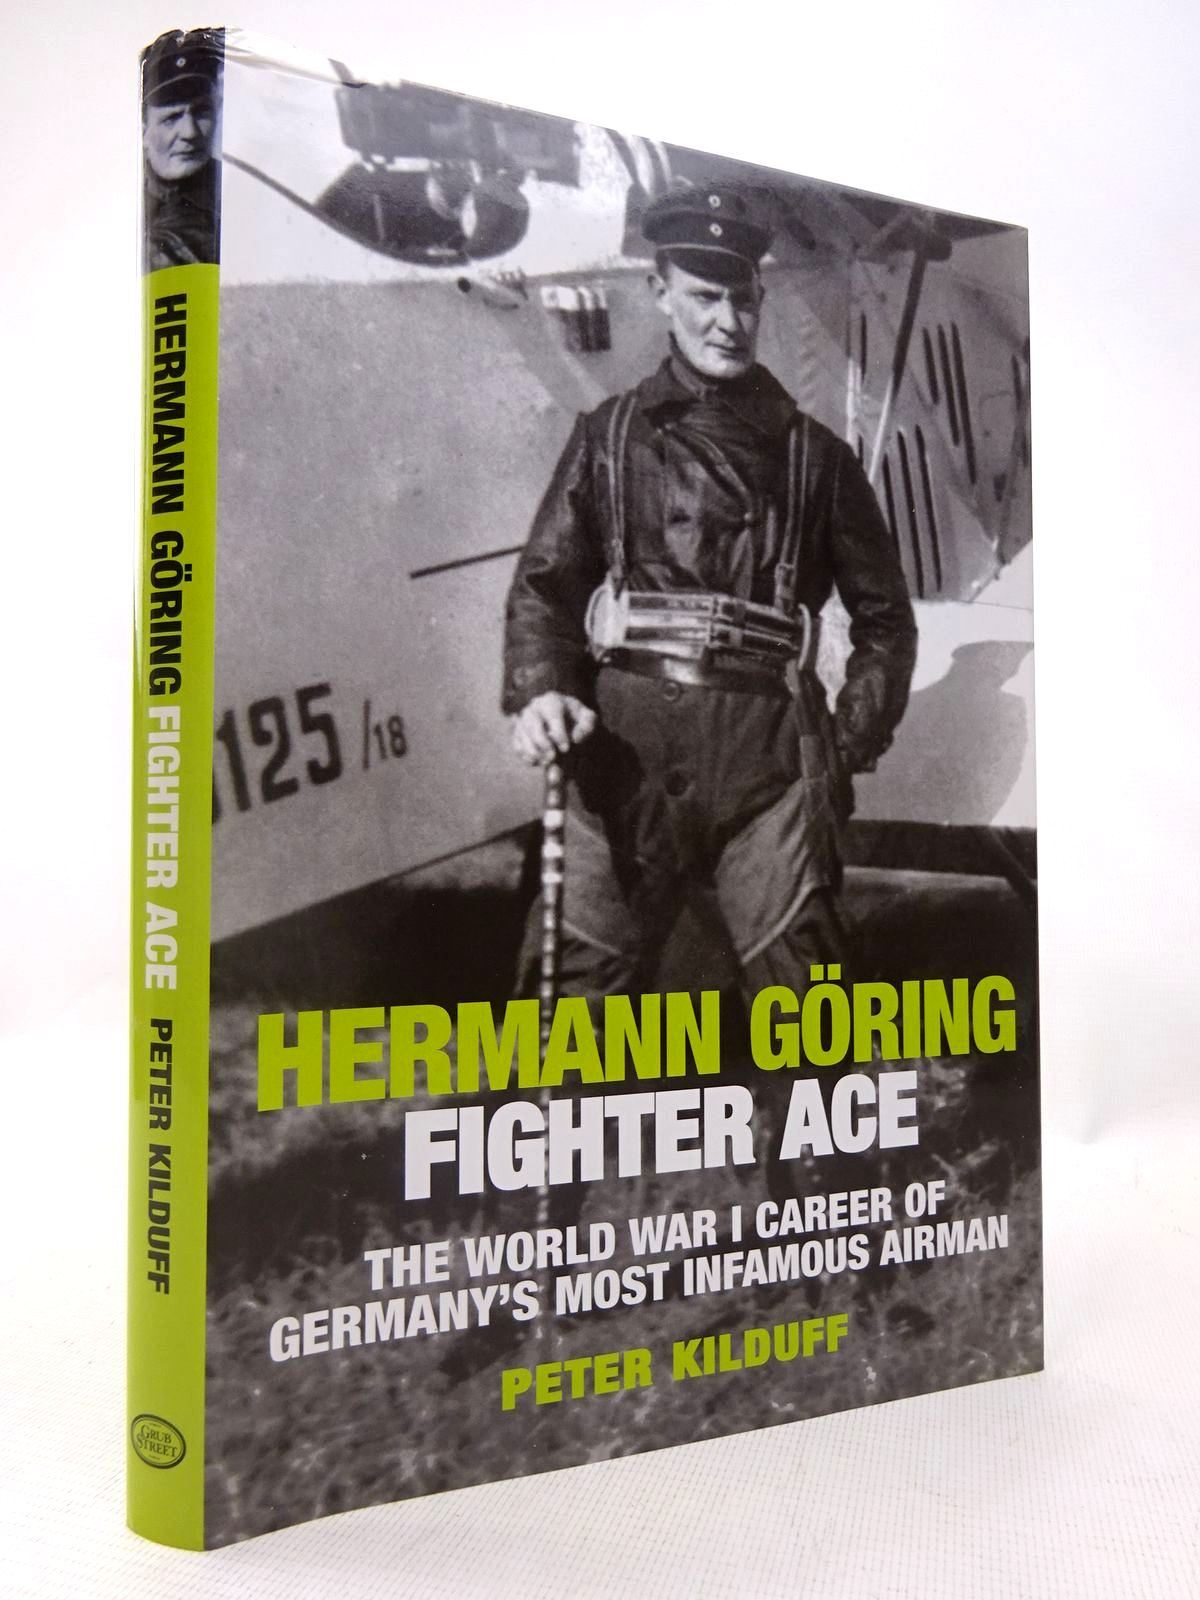 Photo of HERMANN GORING - FIGHTER ACE written by Kilduff, Peter published by Grub Street (STOCK CODE: 1816553)  for sale by Stella & Rose's Books